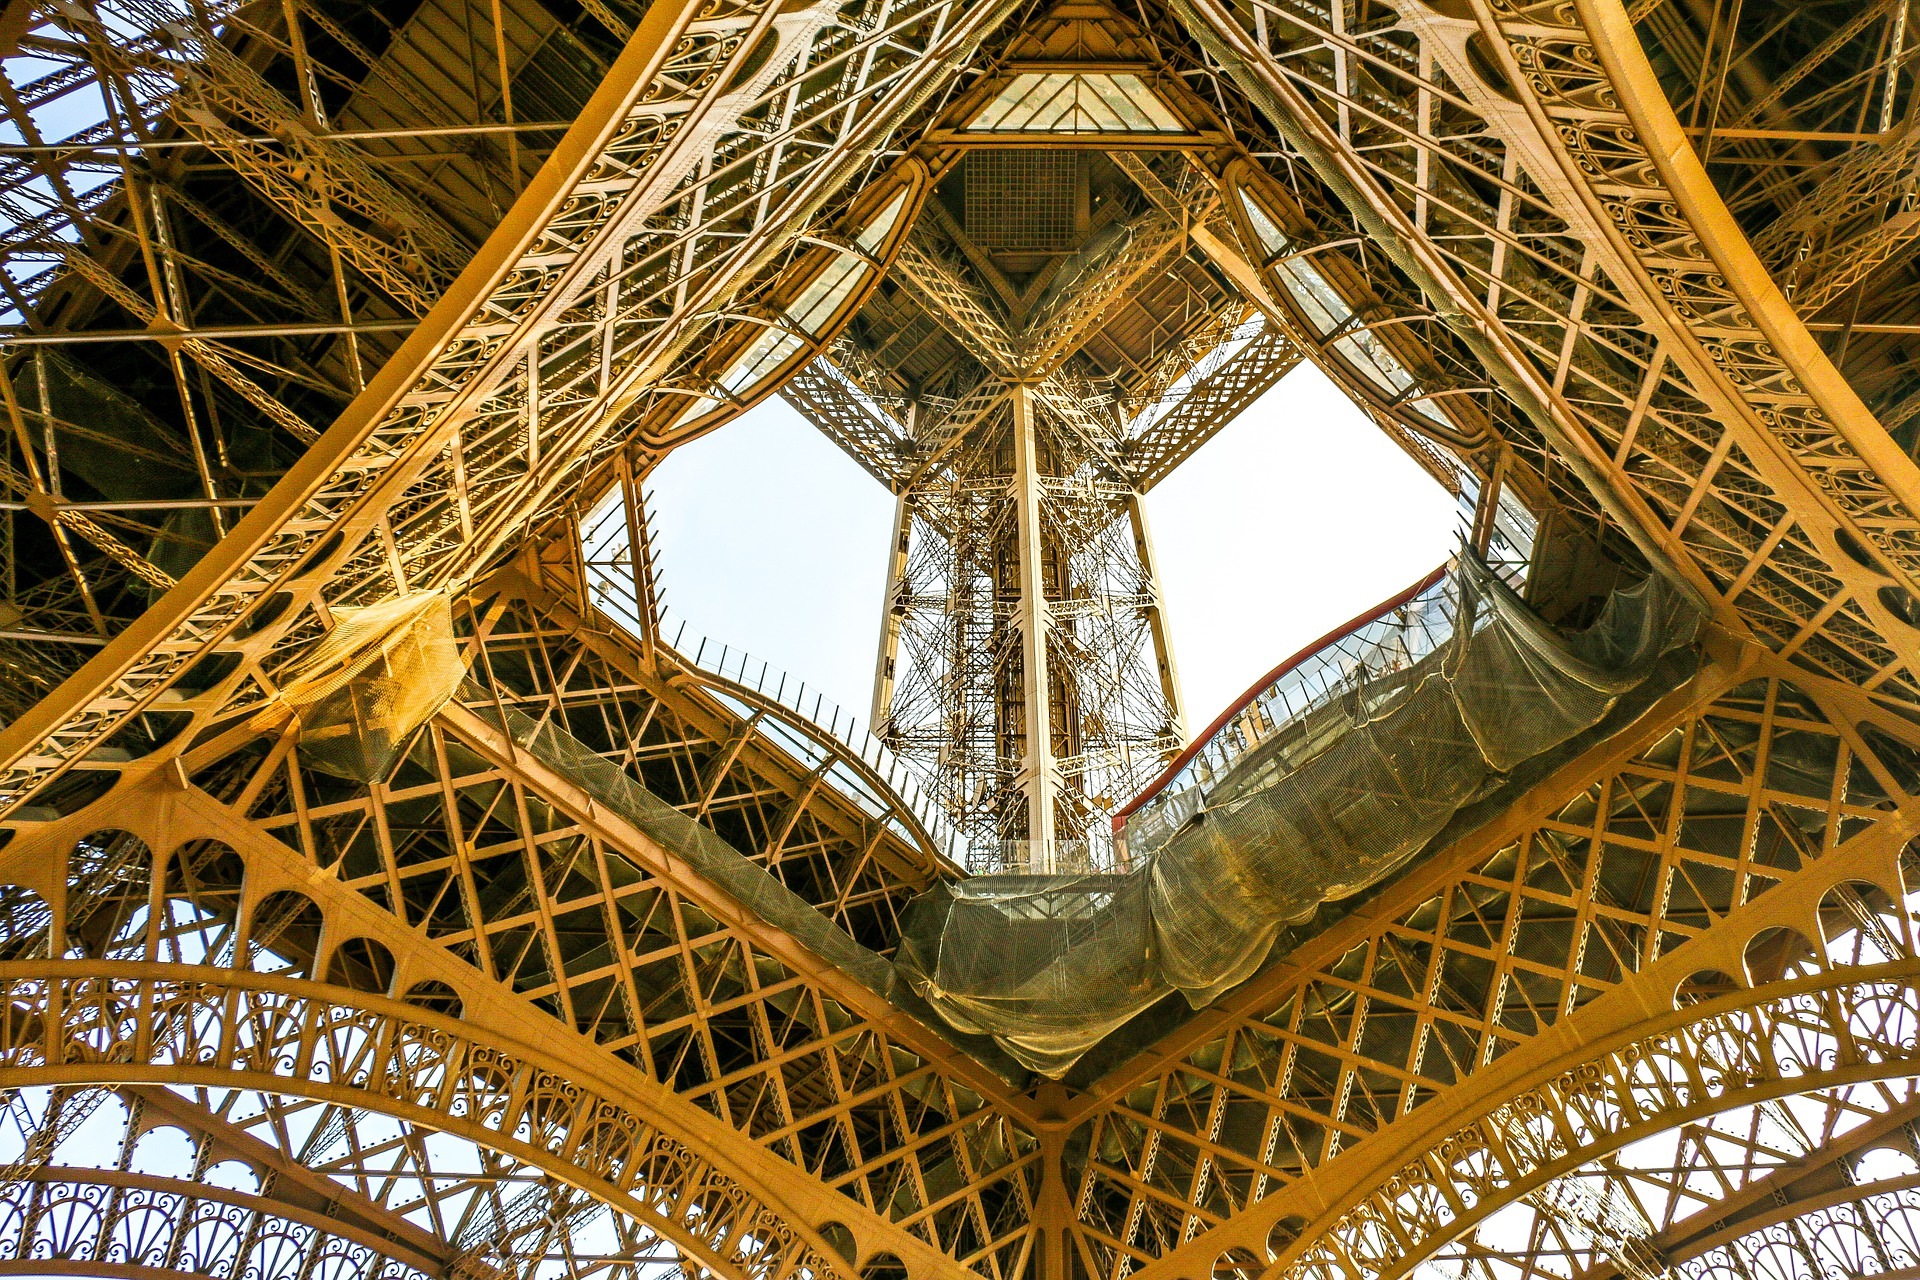 The Eiffel Tower is made from wrought iron